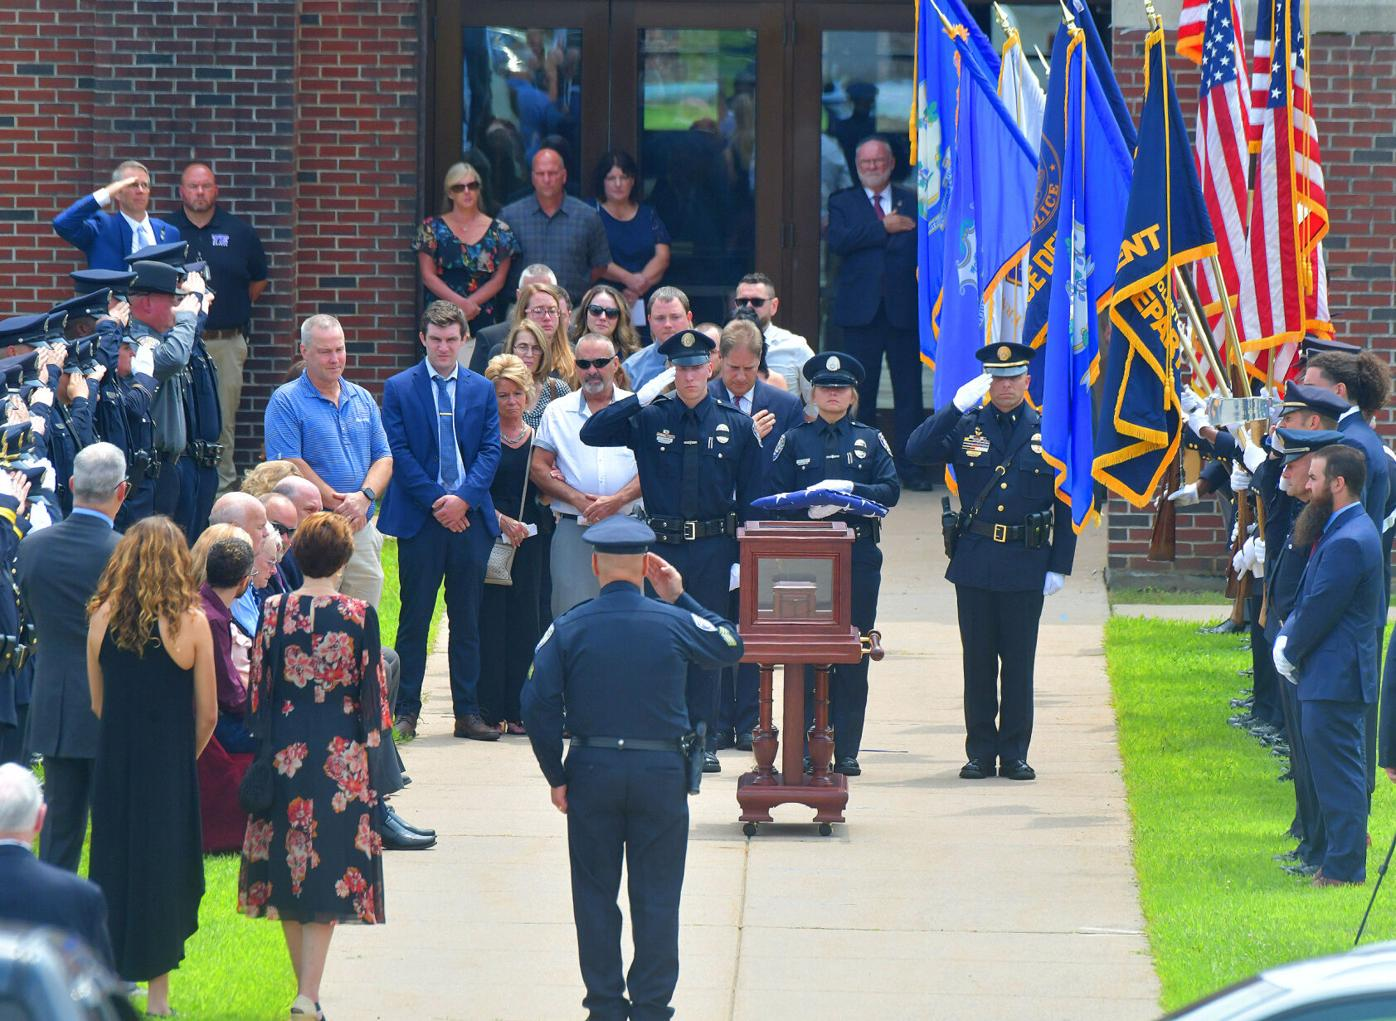 Officer's funeral